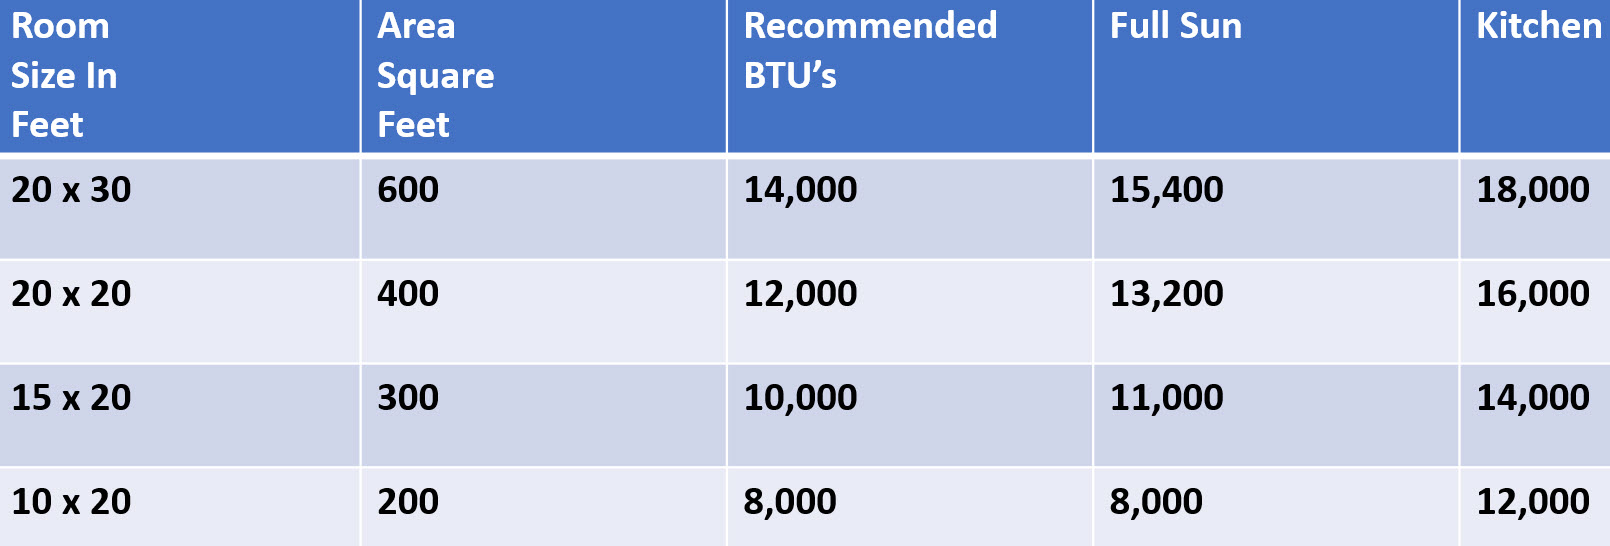 Recommended BTU outputs